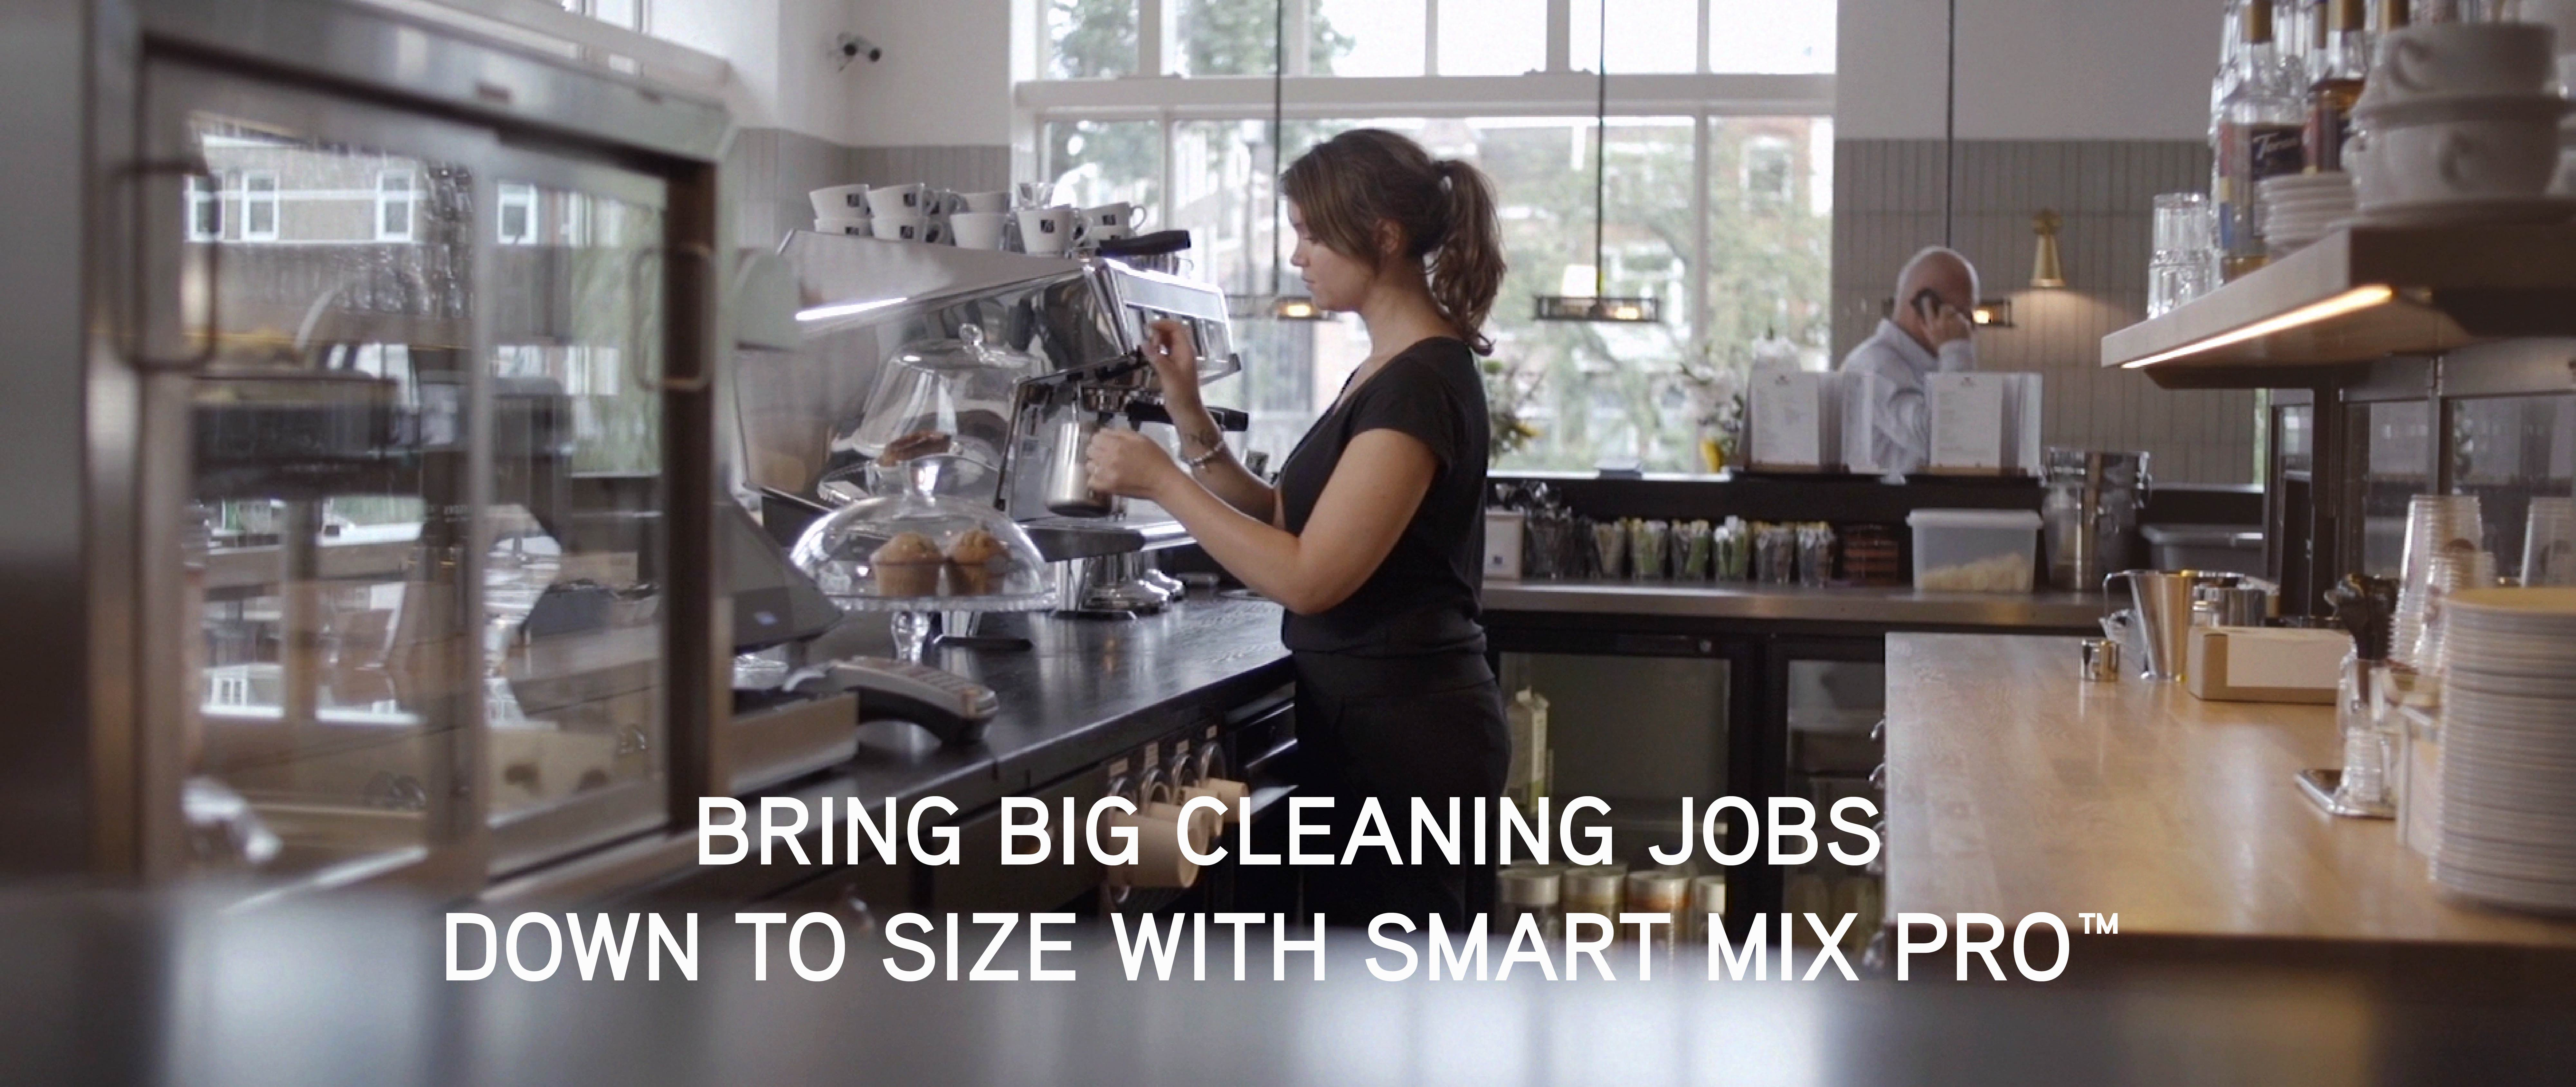 Bring big cleaning jobs down to size with Smart Mix Pro